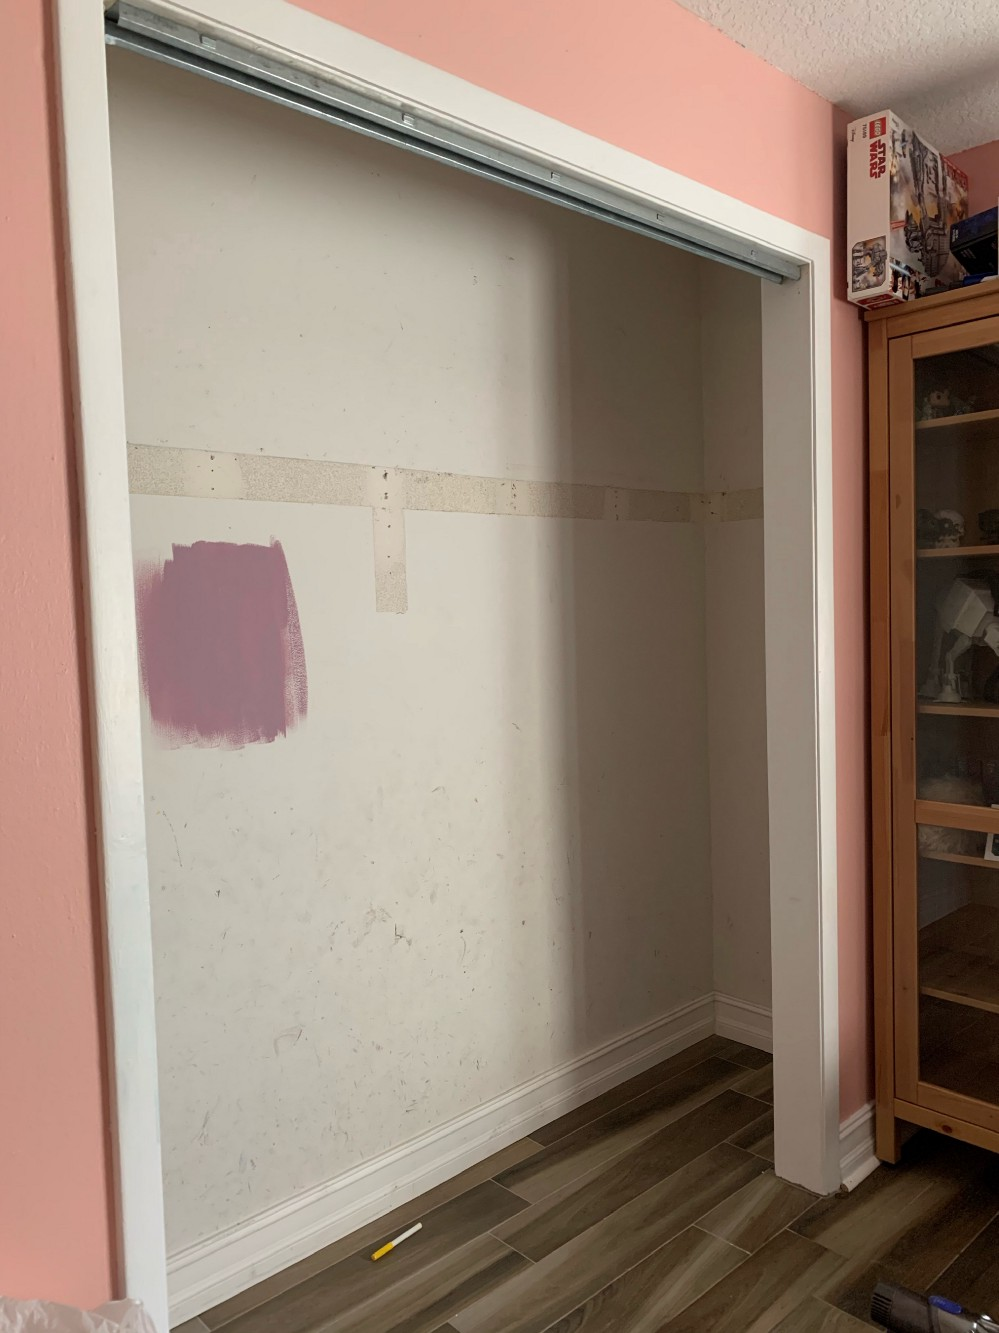 Closet, bare. The outline of the shelf that used to be there is visible on the wall. There is a pinkinsh/purple sample of paint on the wall. Outside of the closet the trim is white, the room is pink (Rachel pink by Sherwin Williams) and the floors are a wood look tile.